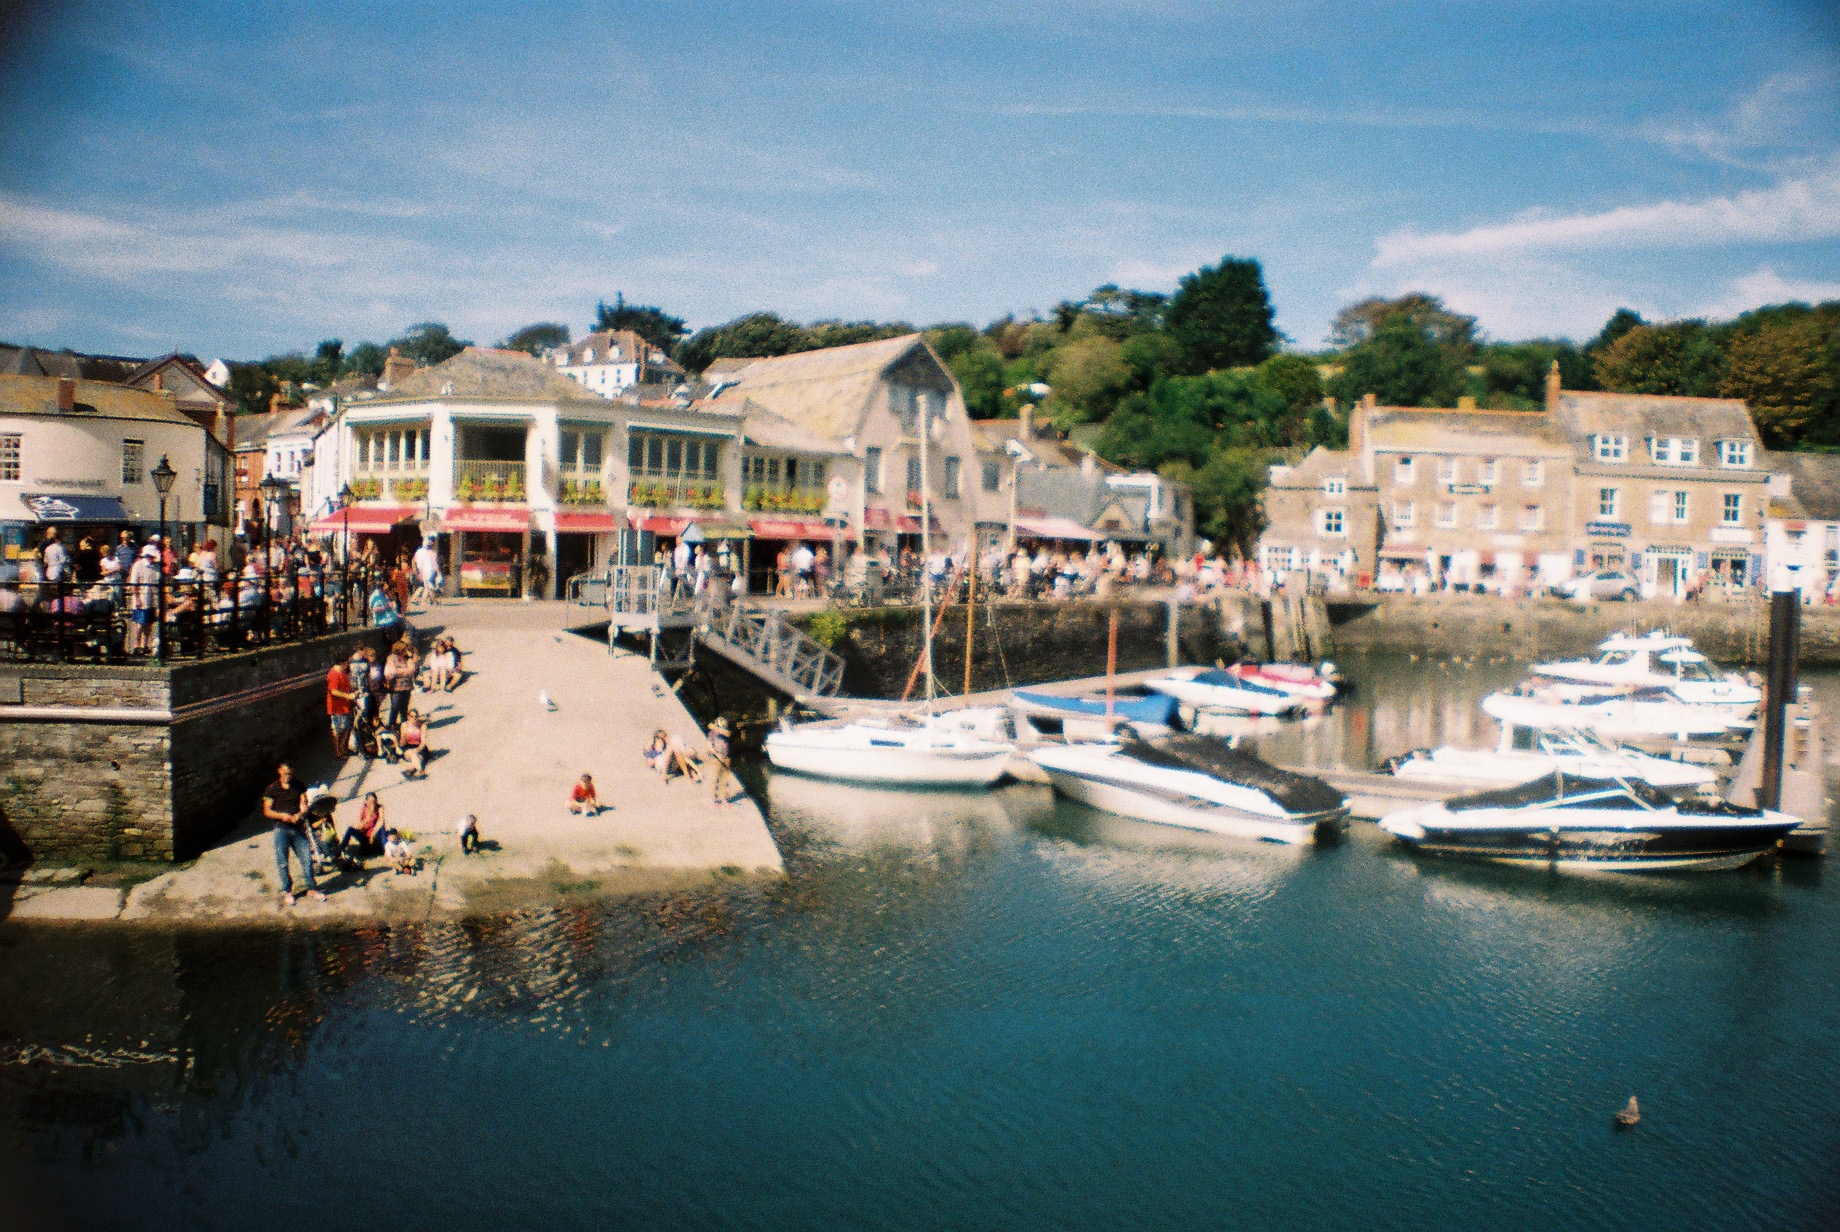 Padstow's quaint harbour